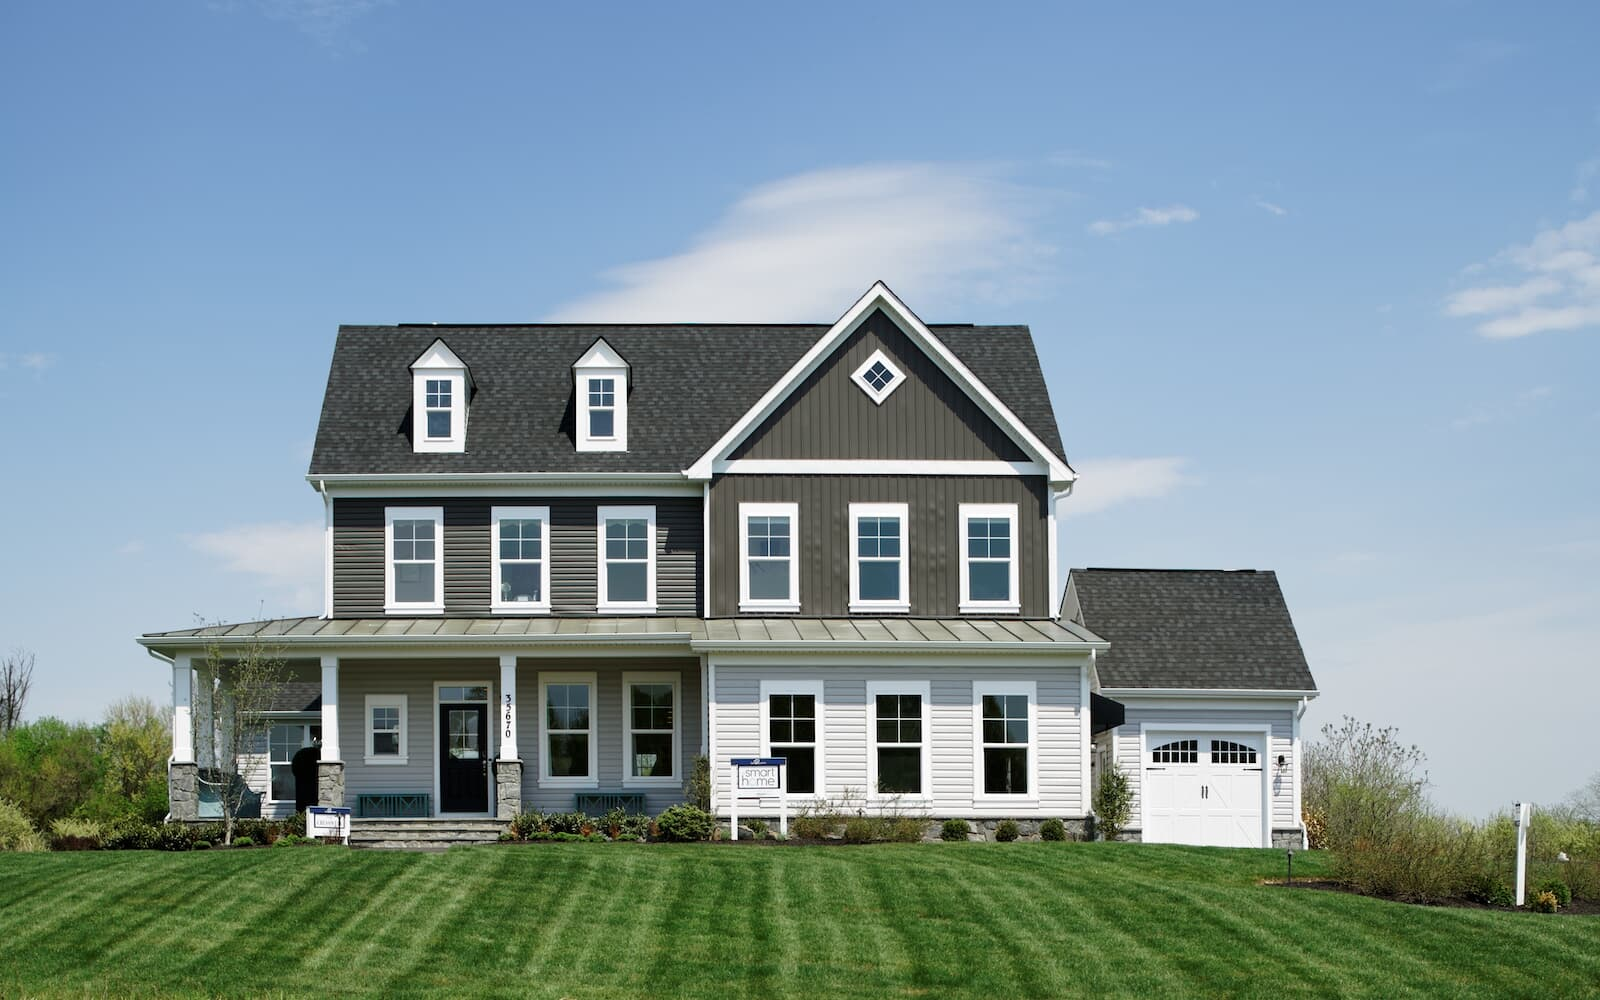 Cresswell-exterior1-single-family-homes-leesburg-va-waterford-manor-brookfield-residential